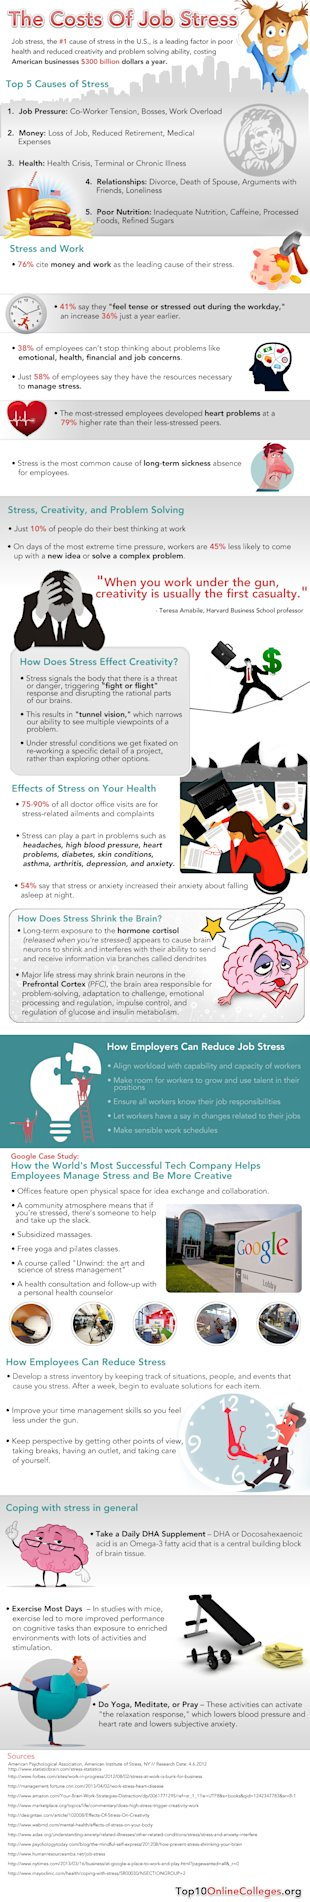 The Costs of Job Stress and How to Combat image stress